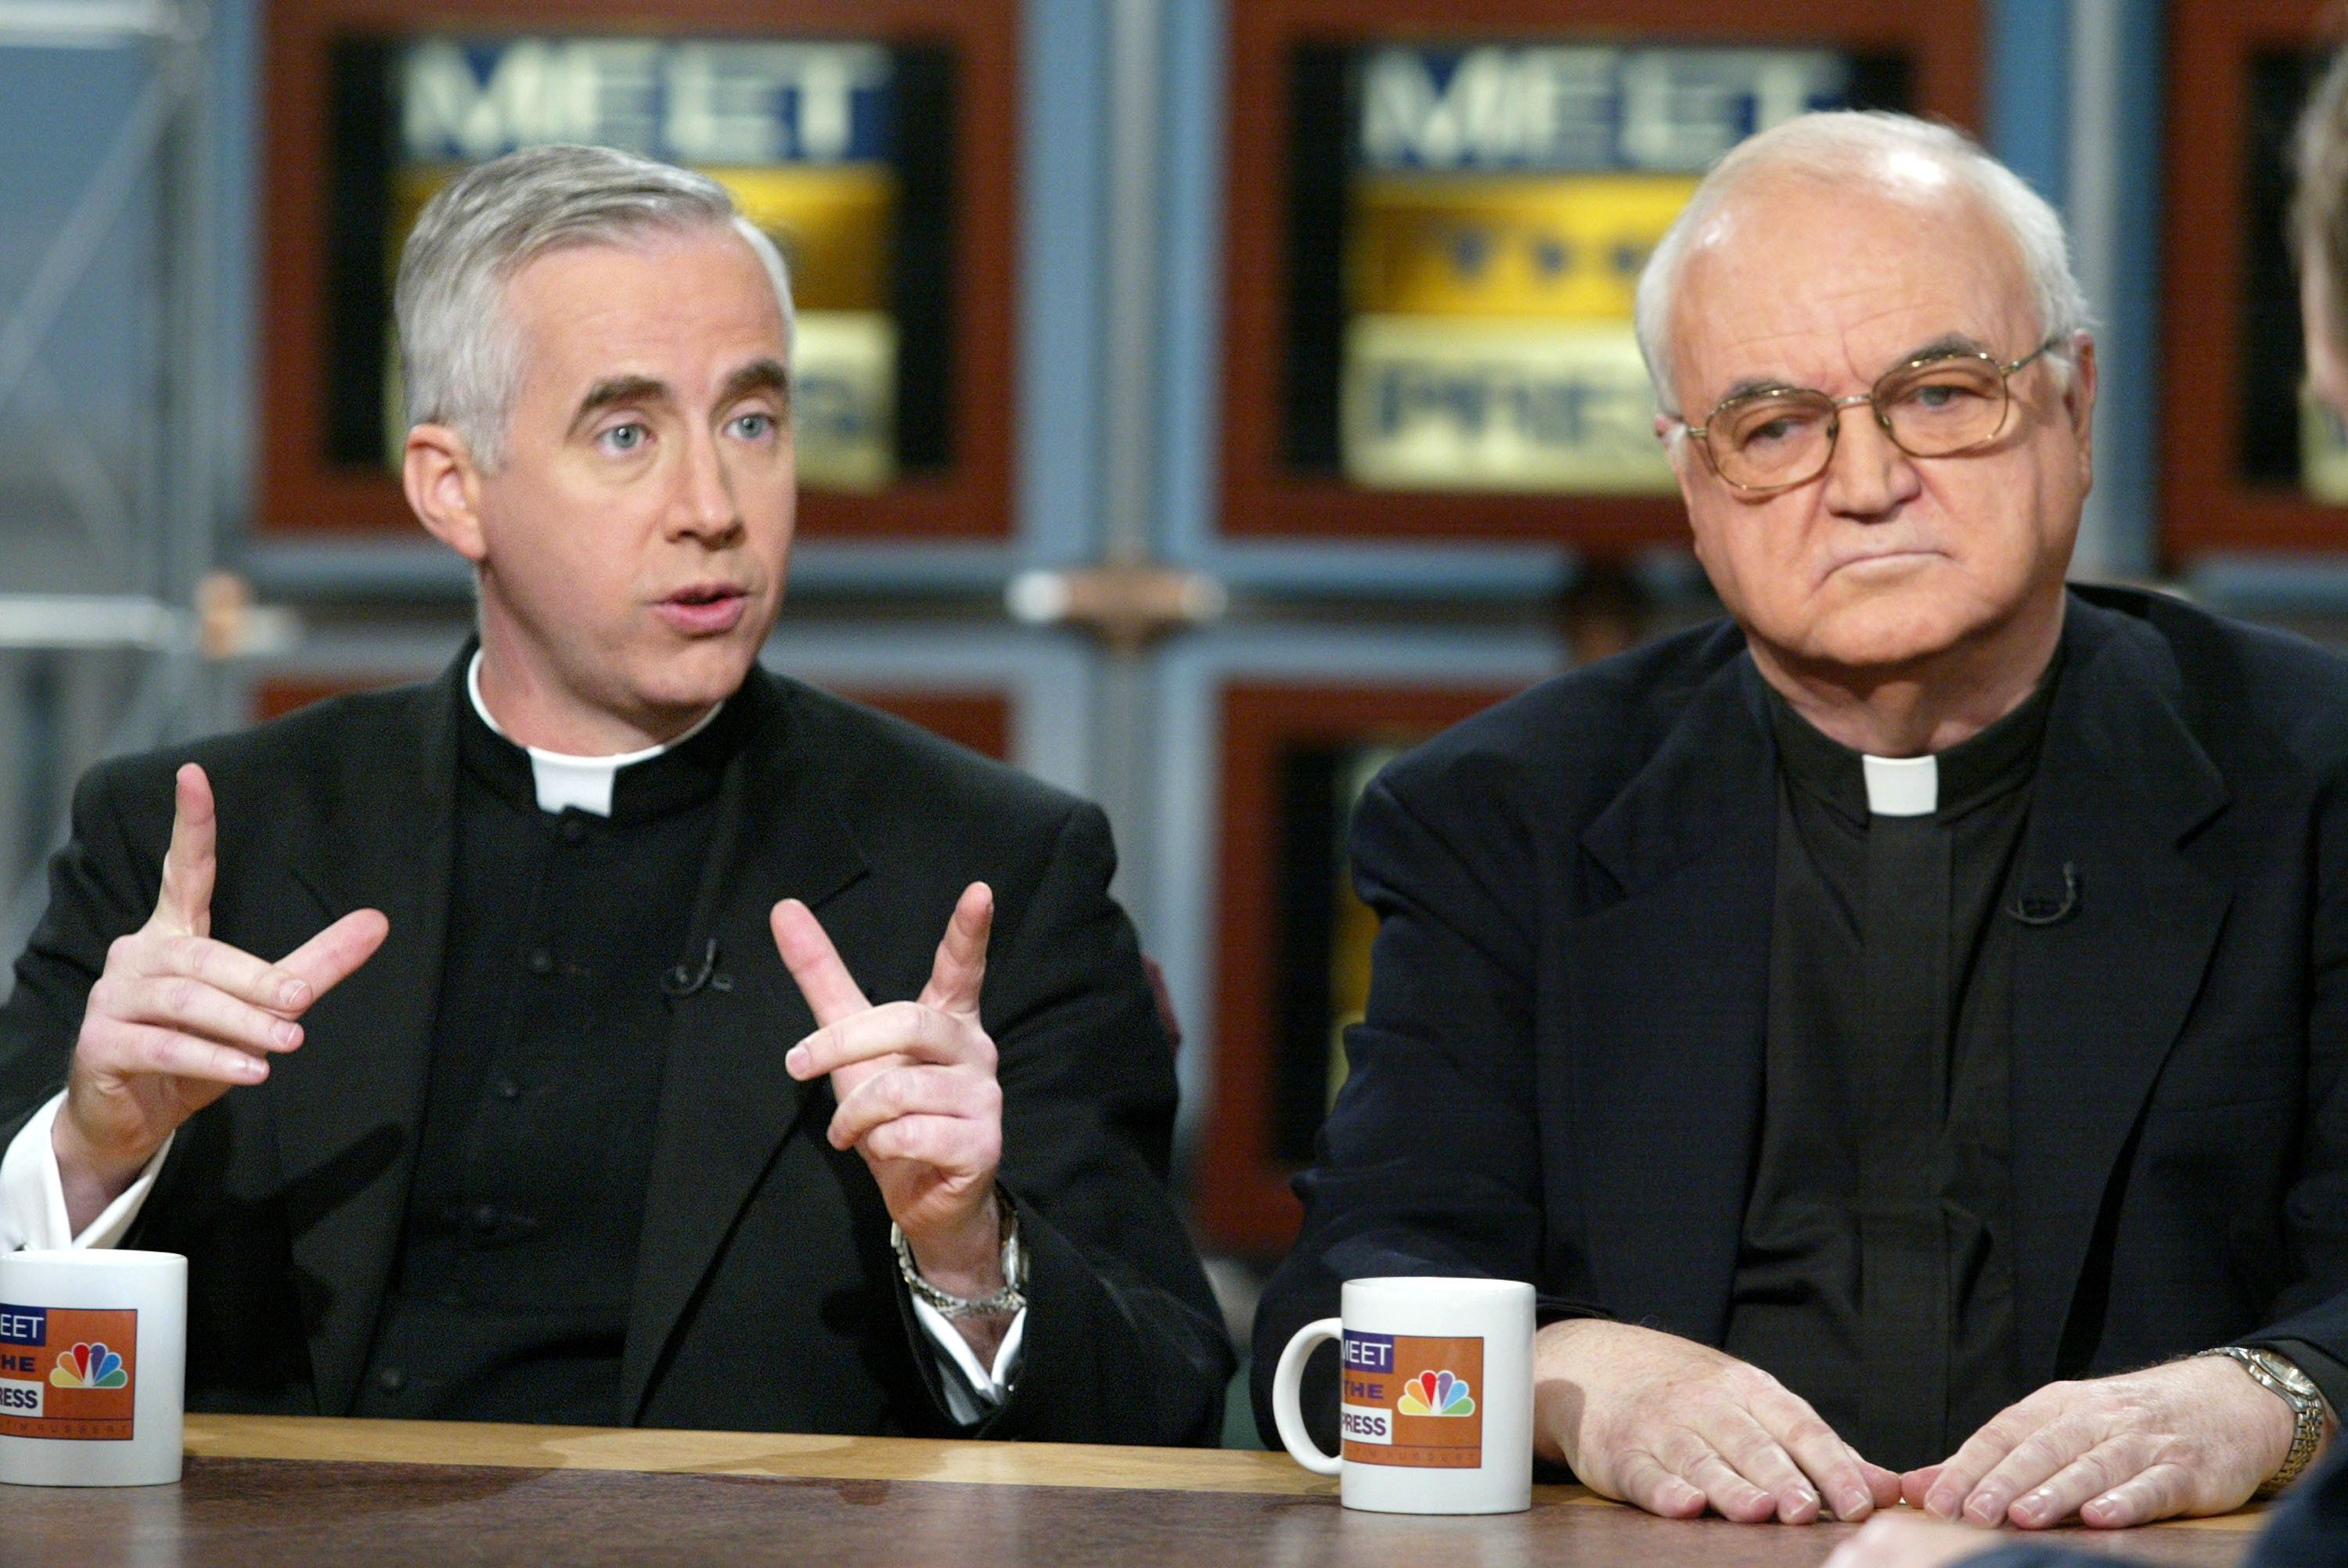 403016 02: Father John McCloskey (L) of the Catholic Information Center, and Father Richard McBrien (R) of the University of Notre Dame talk about the recent sex scandals of Catholic Church on NBC's ''Meet the Press'' March 31, 2002 in Washington, DC. The interview was taped on March 27, 2002 at the NBC studios in Washington, DC. (Photo by Alex Wong/Getty Images)